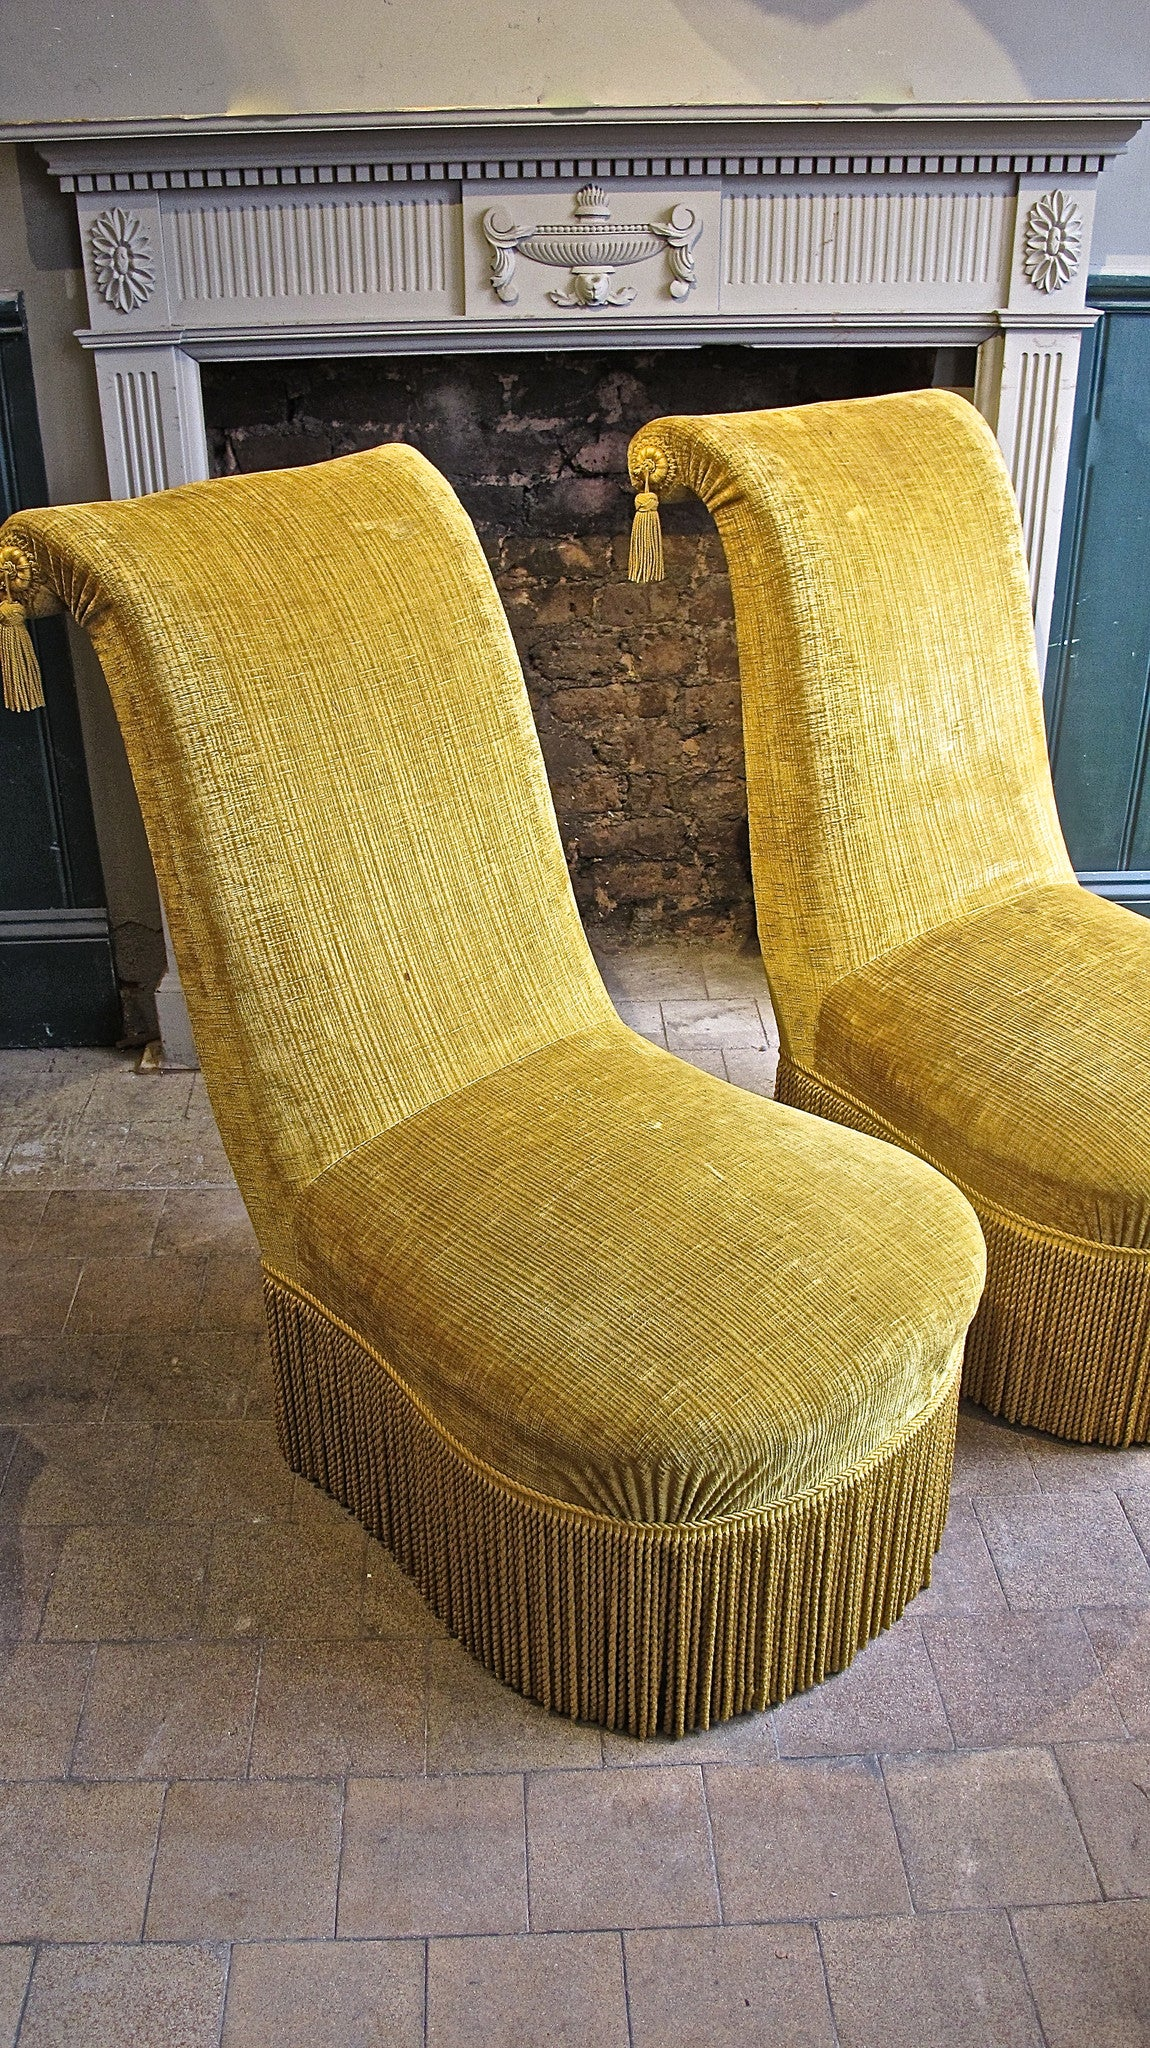 X Pair of french 19th century chairs with sweeping backs and tassel detail